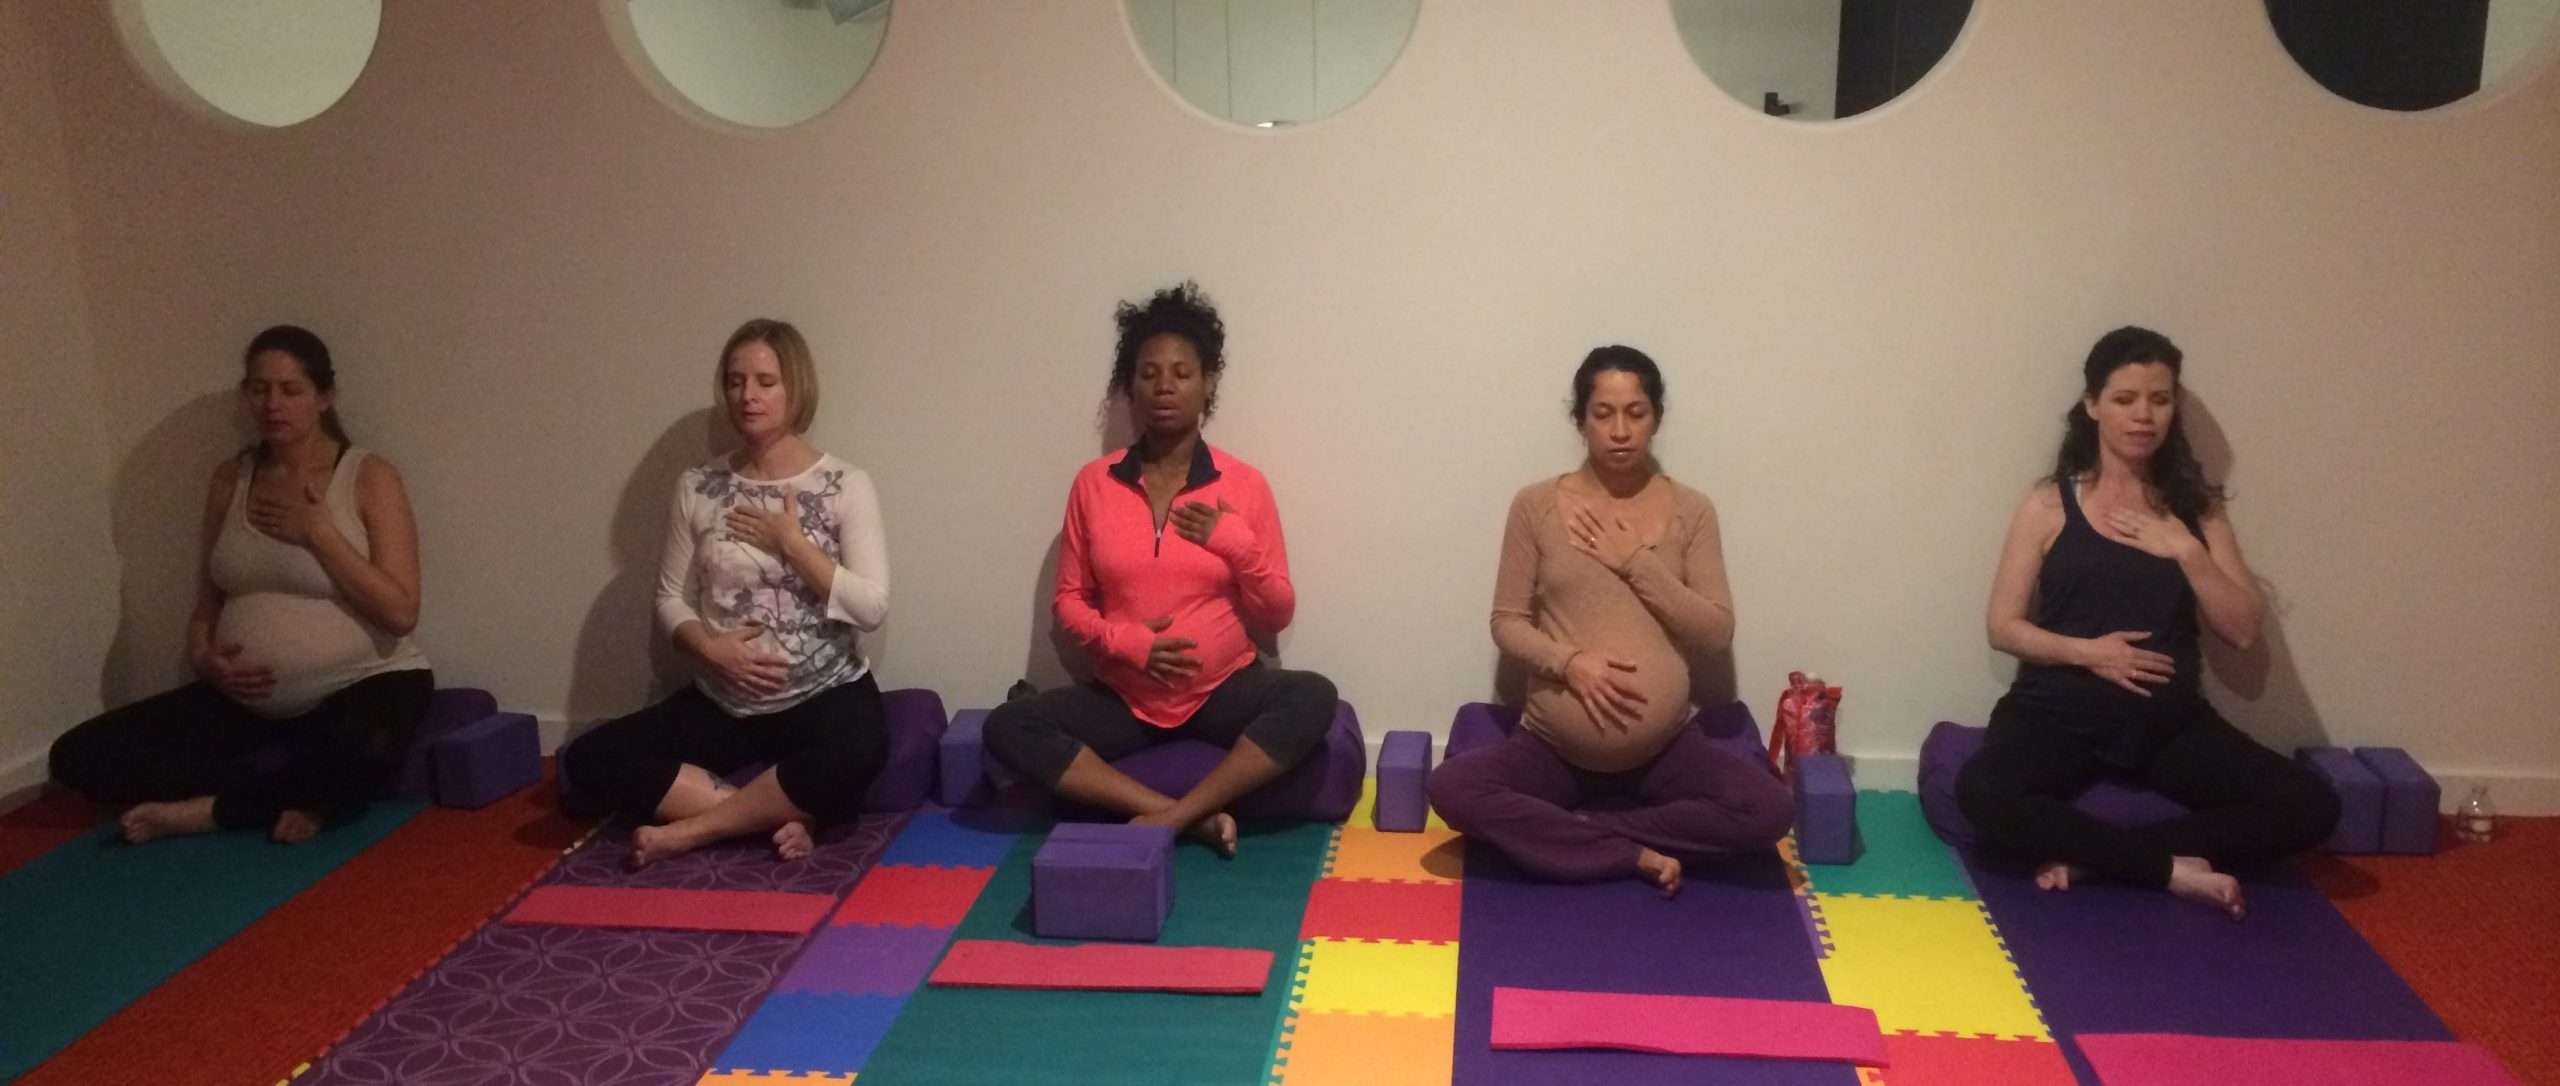 Online Prenatal Yoga Mom Baby And Yoga In The Ma Yoga